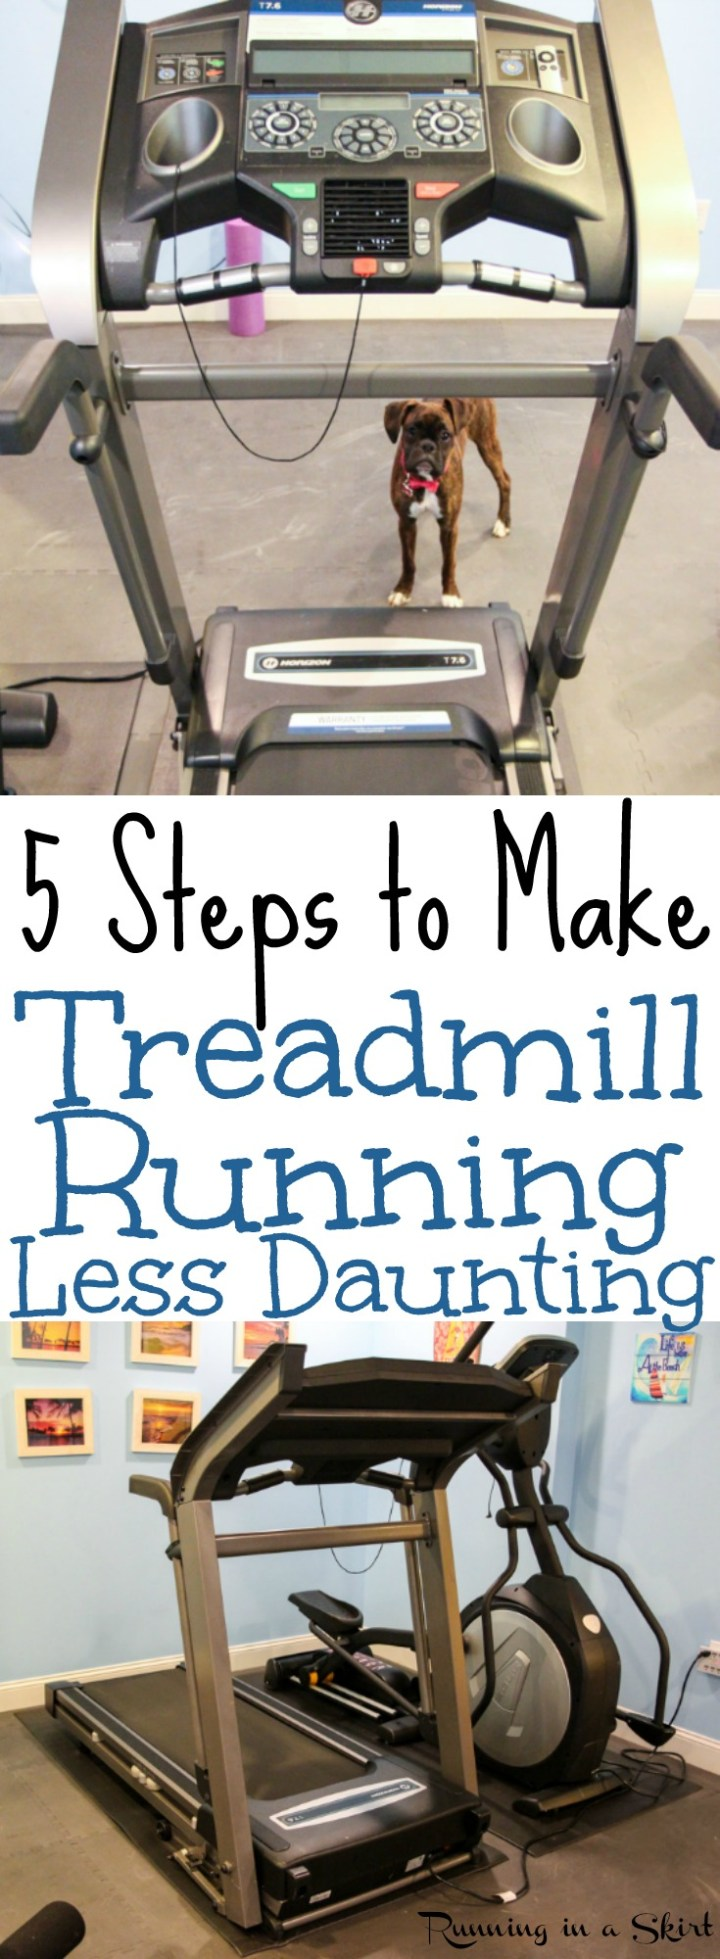 5 Tips to Make Treadmill Running Less Daunting.  And easy and awesome plan to make the time go by faster including workout ideas. Motivation for beginners or advanced. / Running in a Skirt via @juliewunder